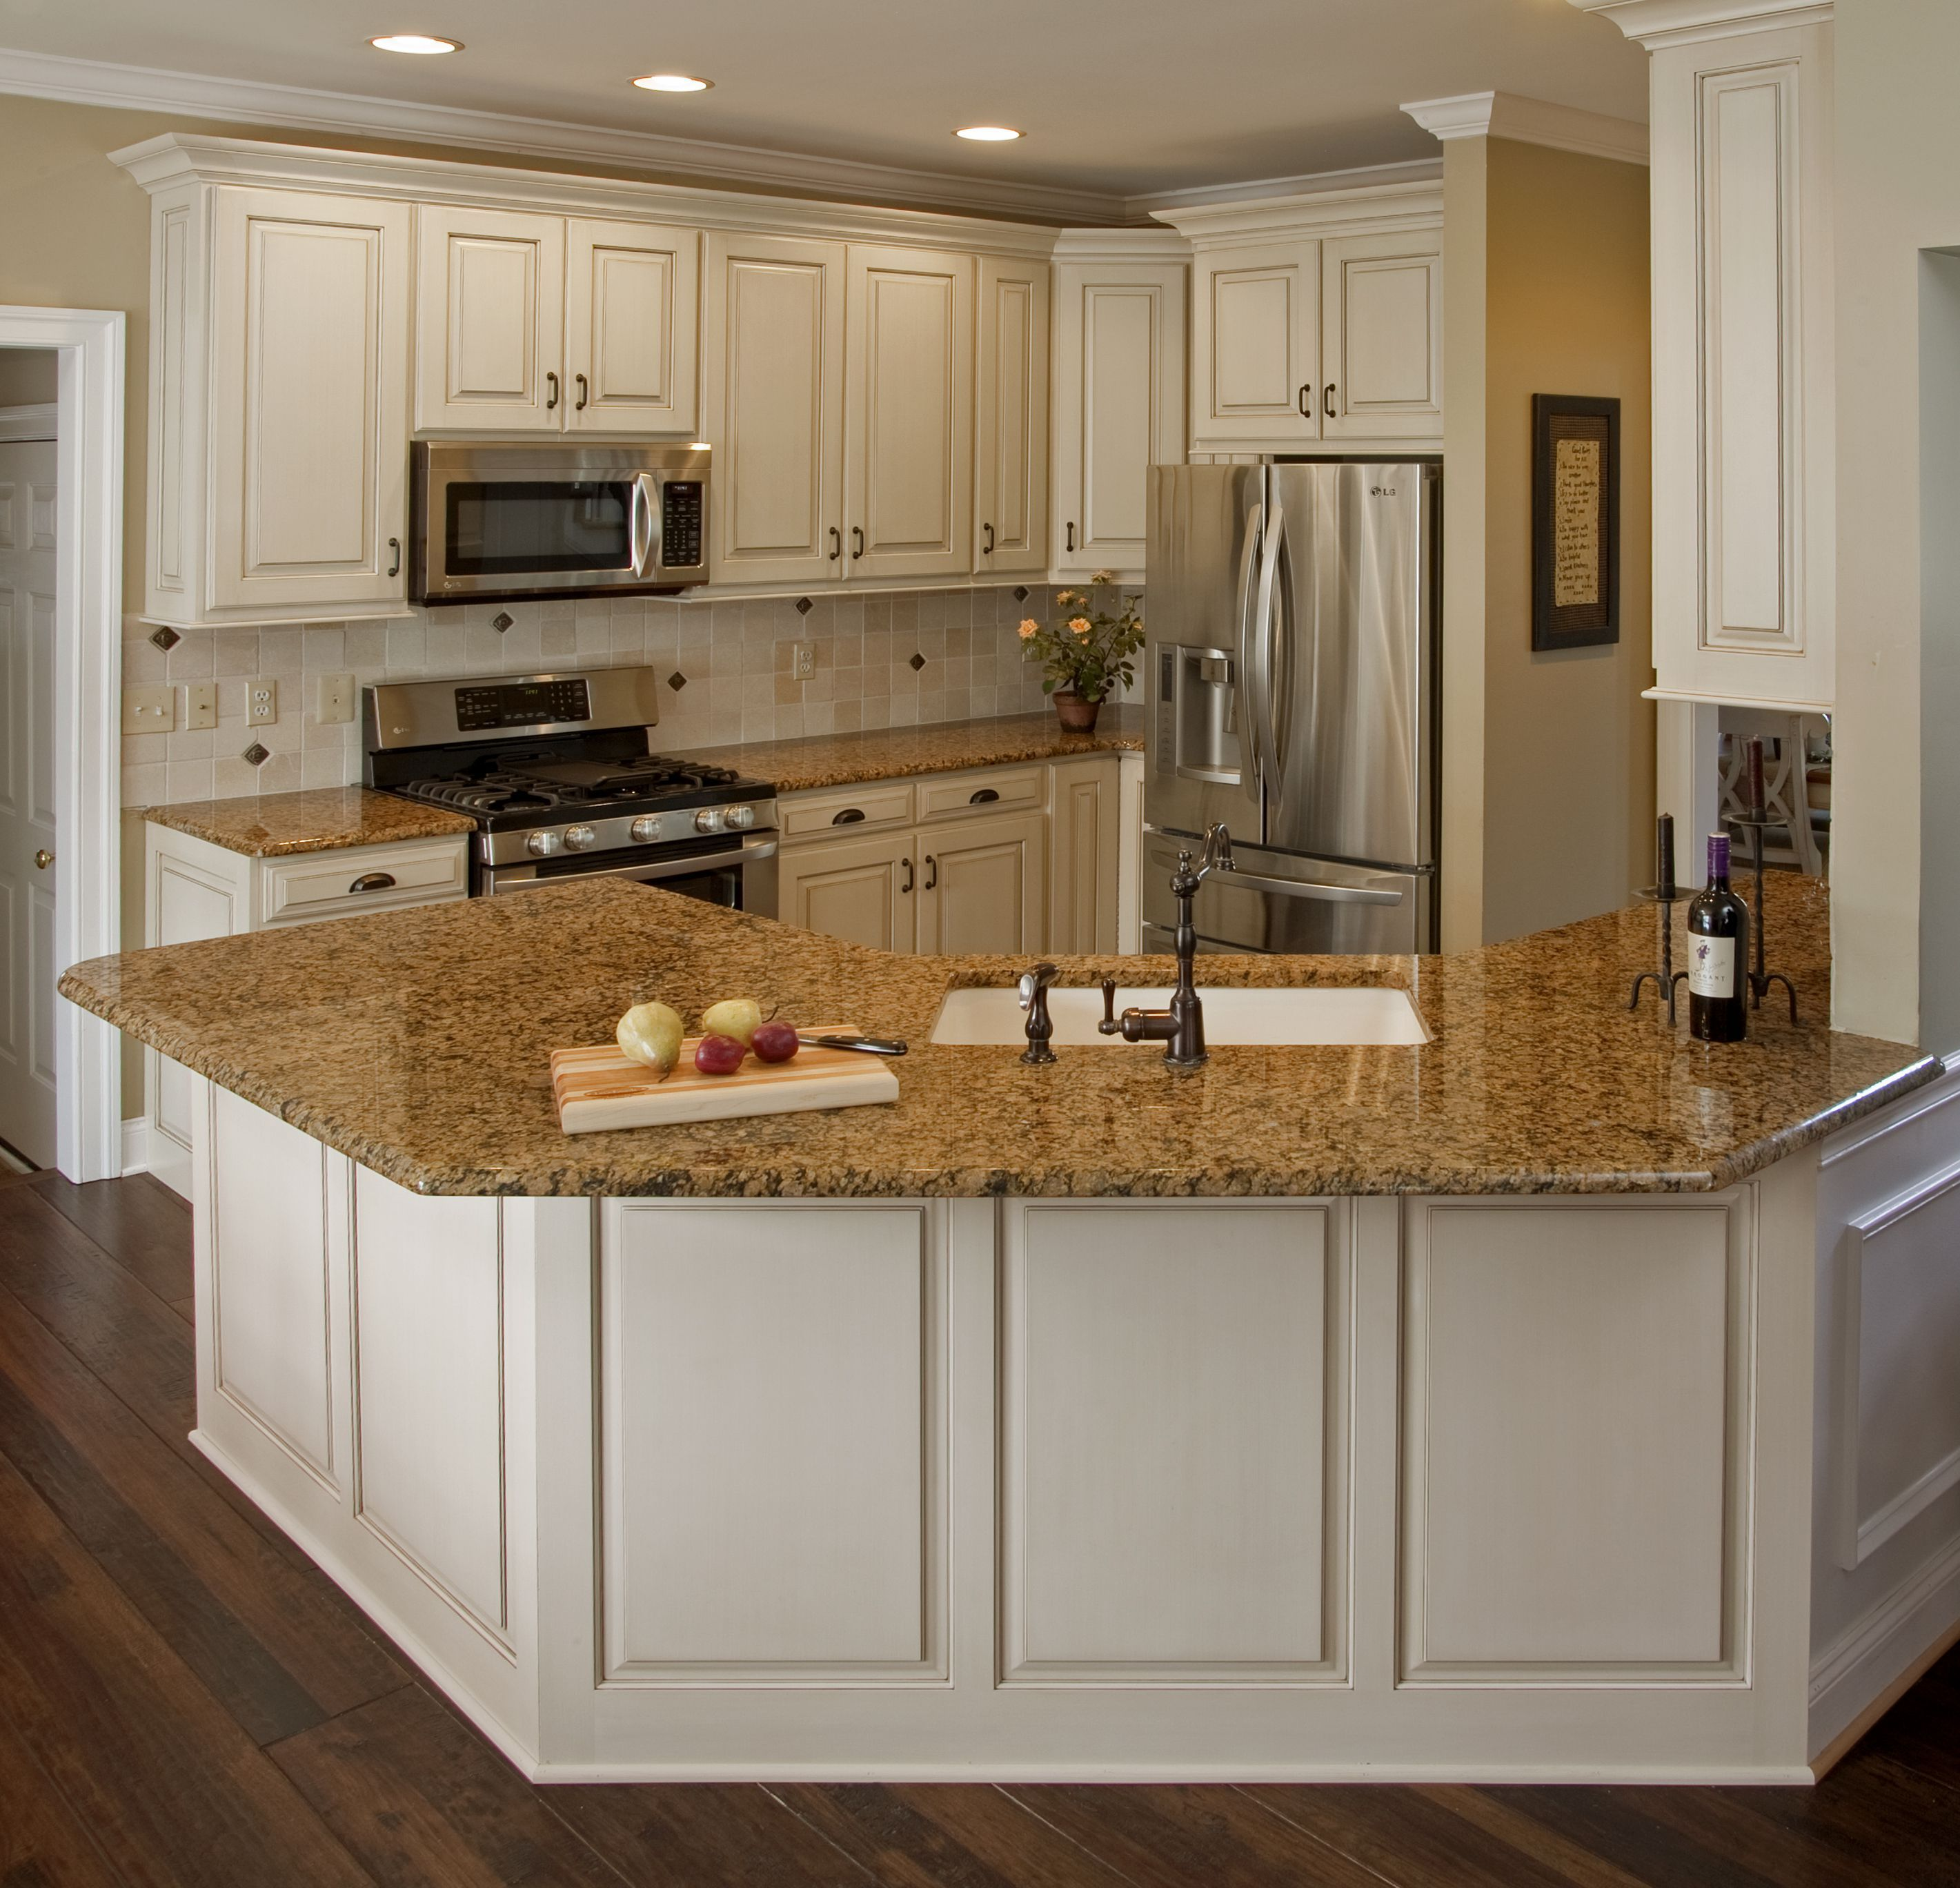 Calculating Cabinet Refacing Cost And Factors To Consider